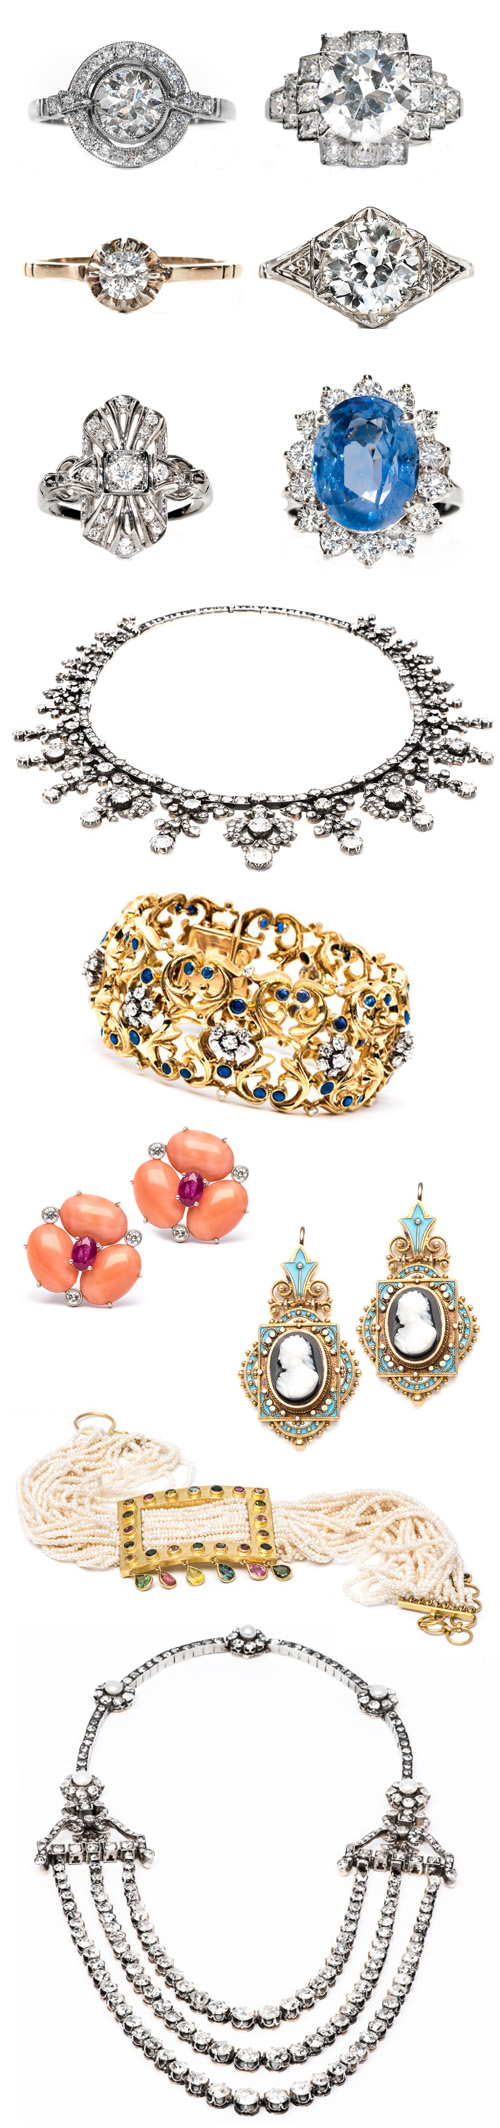 Vintage Estate Jewelry from Trumpet and Horn via Junebug Weddings | junebugweddings.com